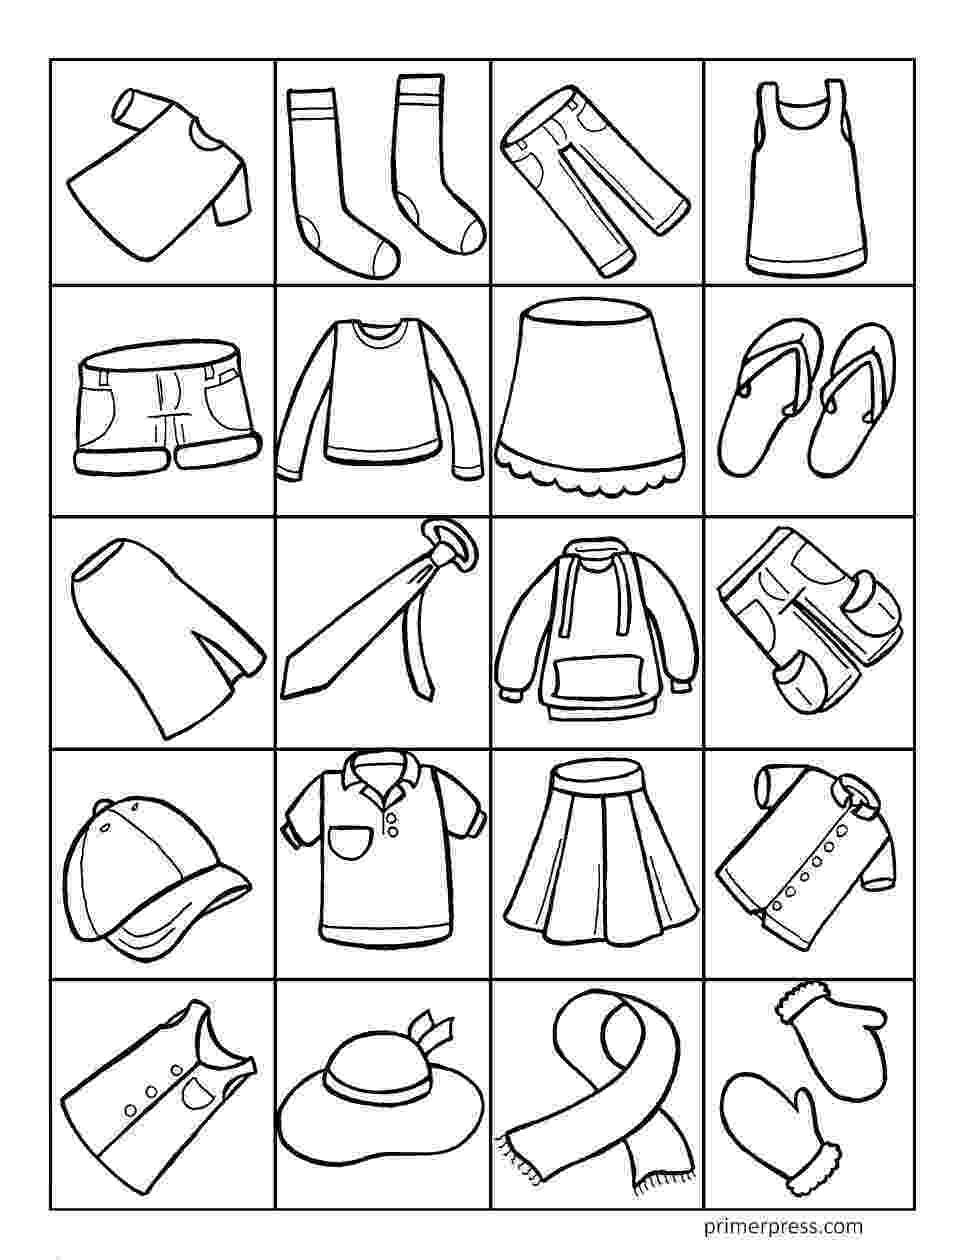 coloring pages clothes printable summer clothing coloring page coloring pages coloriage clothes coloring pages printable